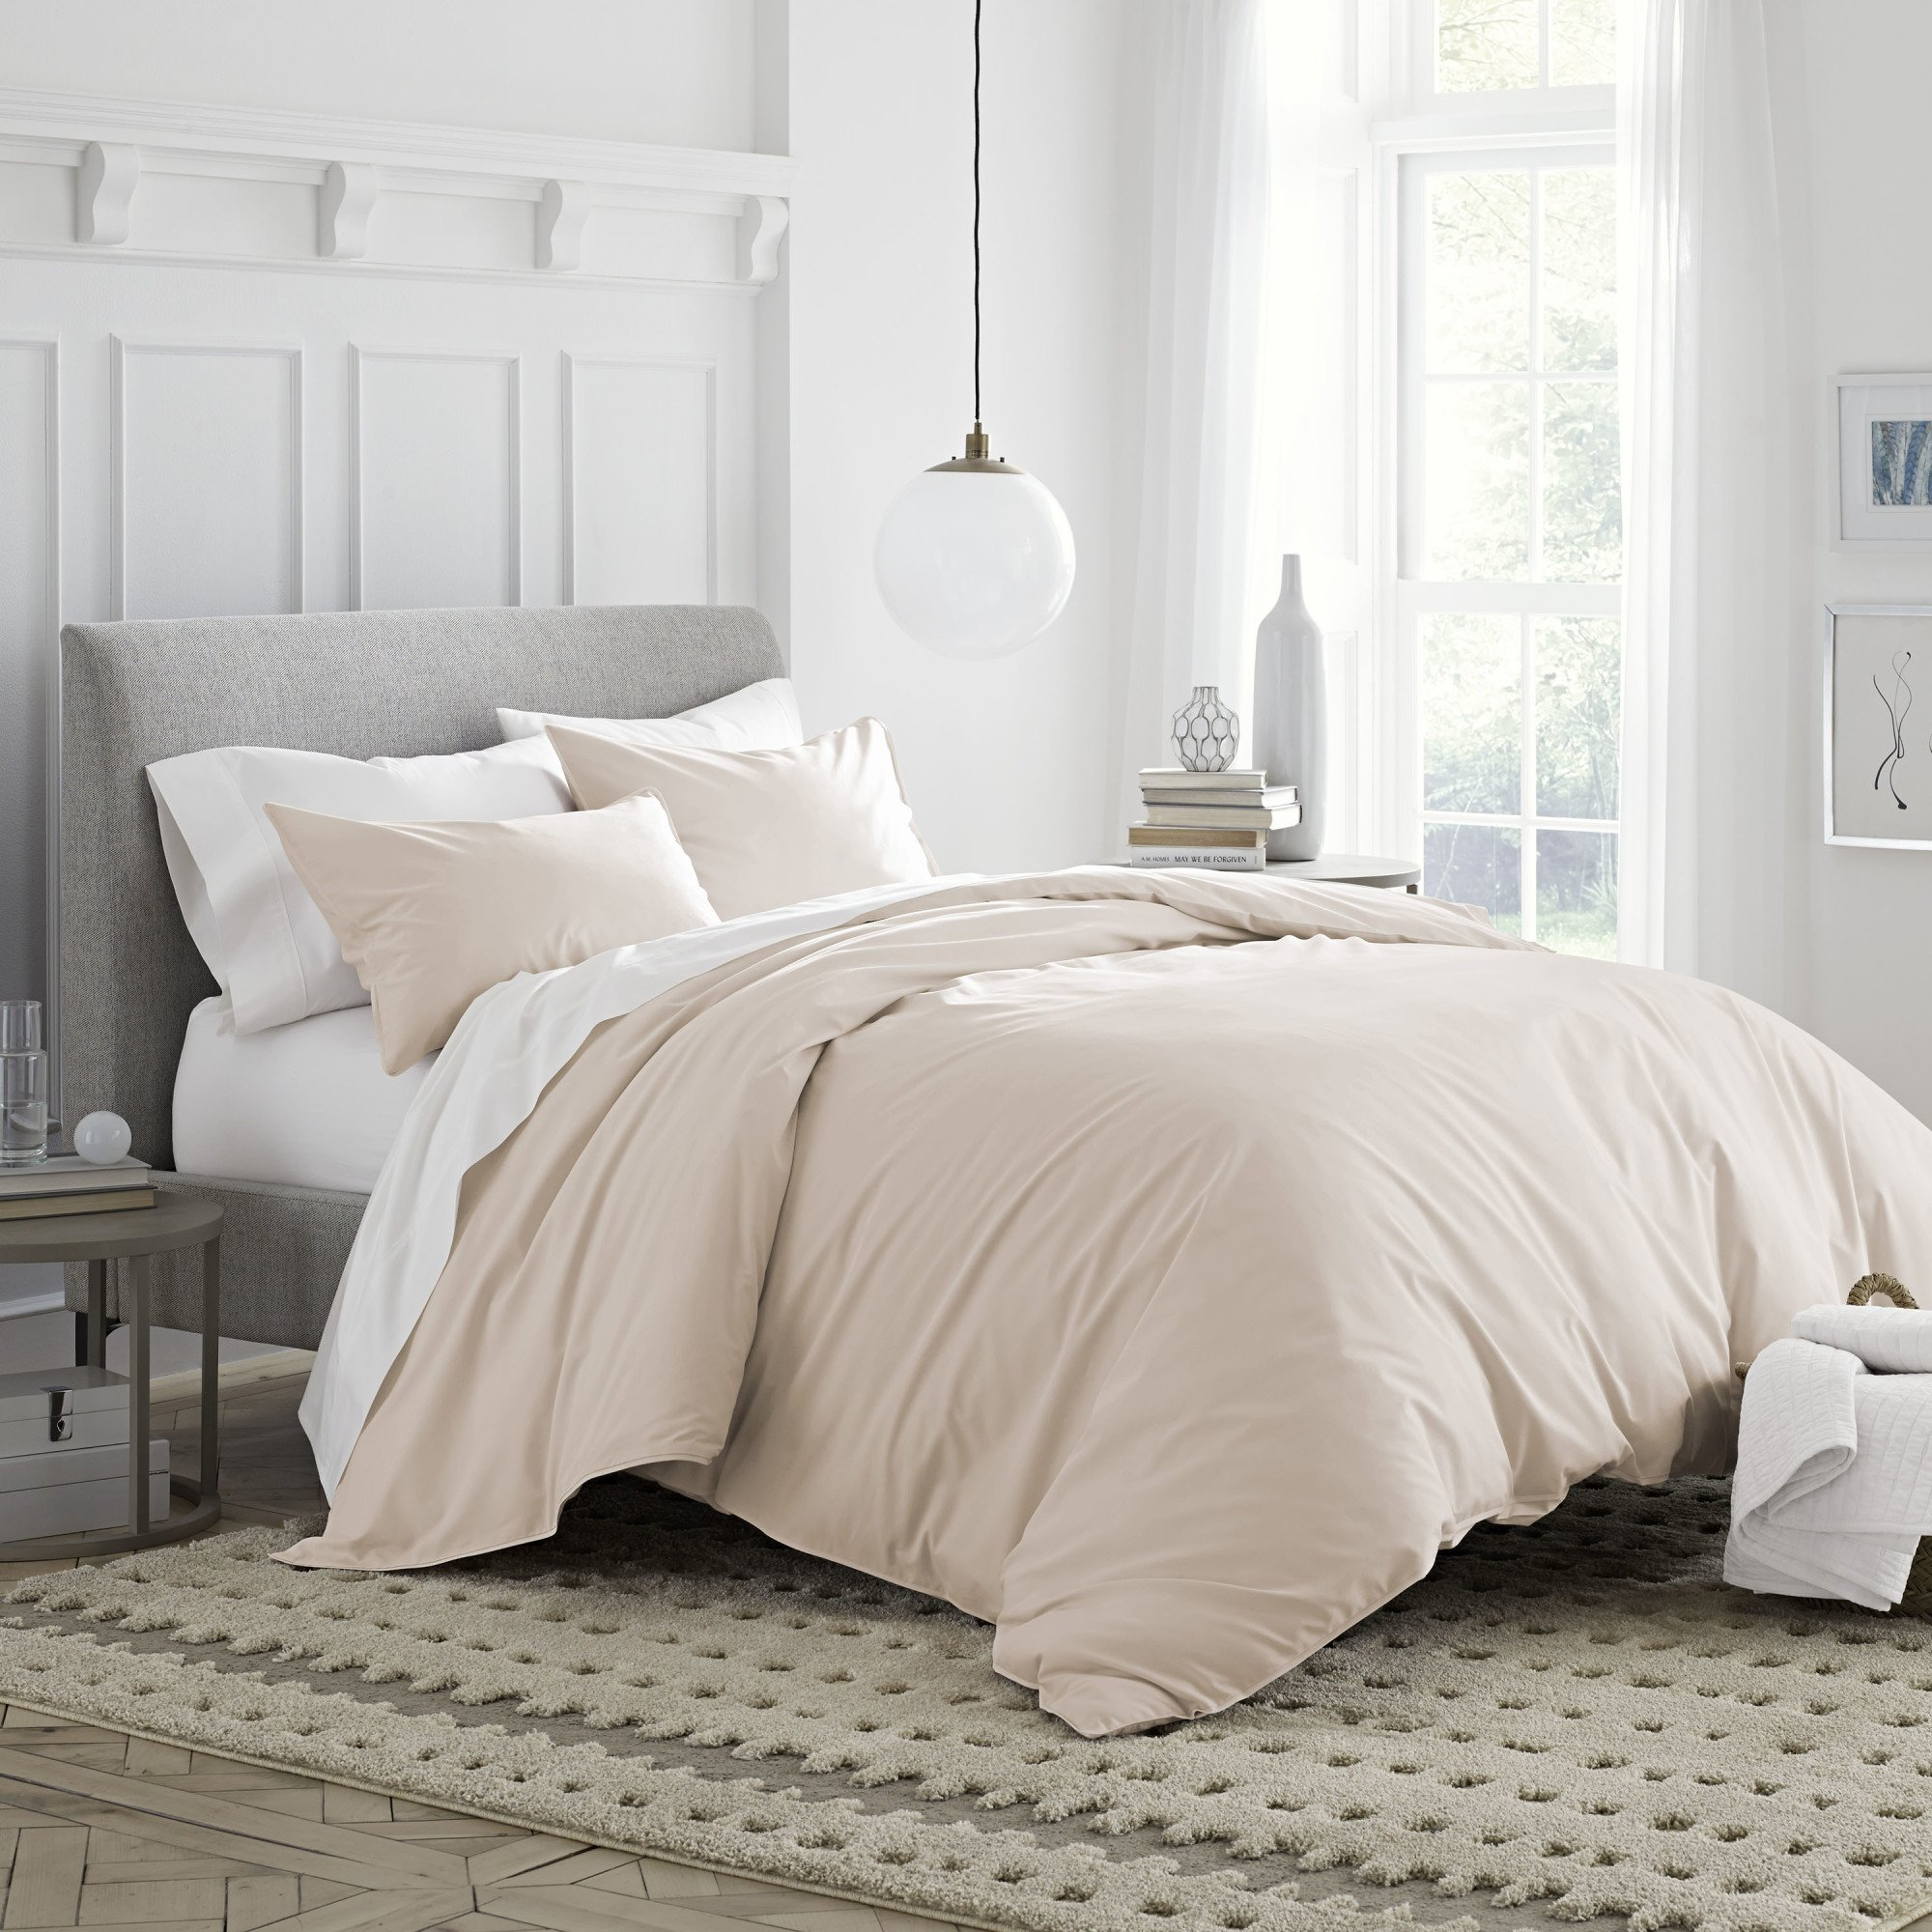 Under The Canopy Brushed Organic Cotton Duvet Cover Set Twin Blush Pink 2 Duvet Cover and & Twin Bed Canopy Cover: Amazon.com